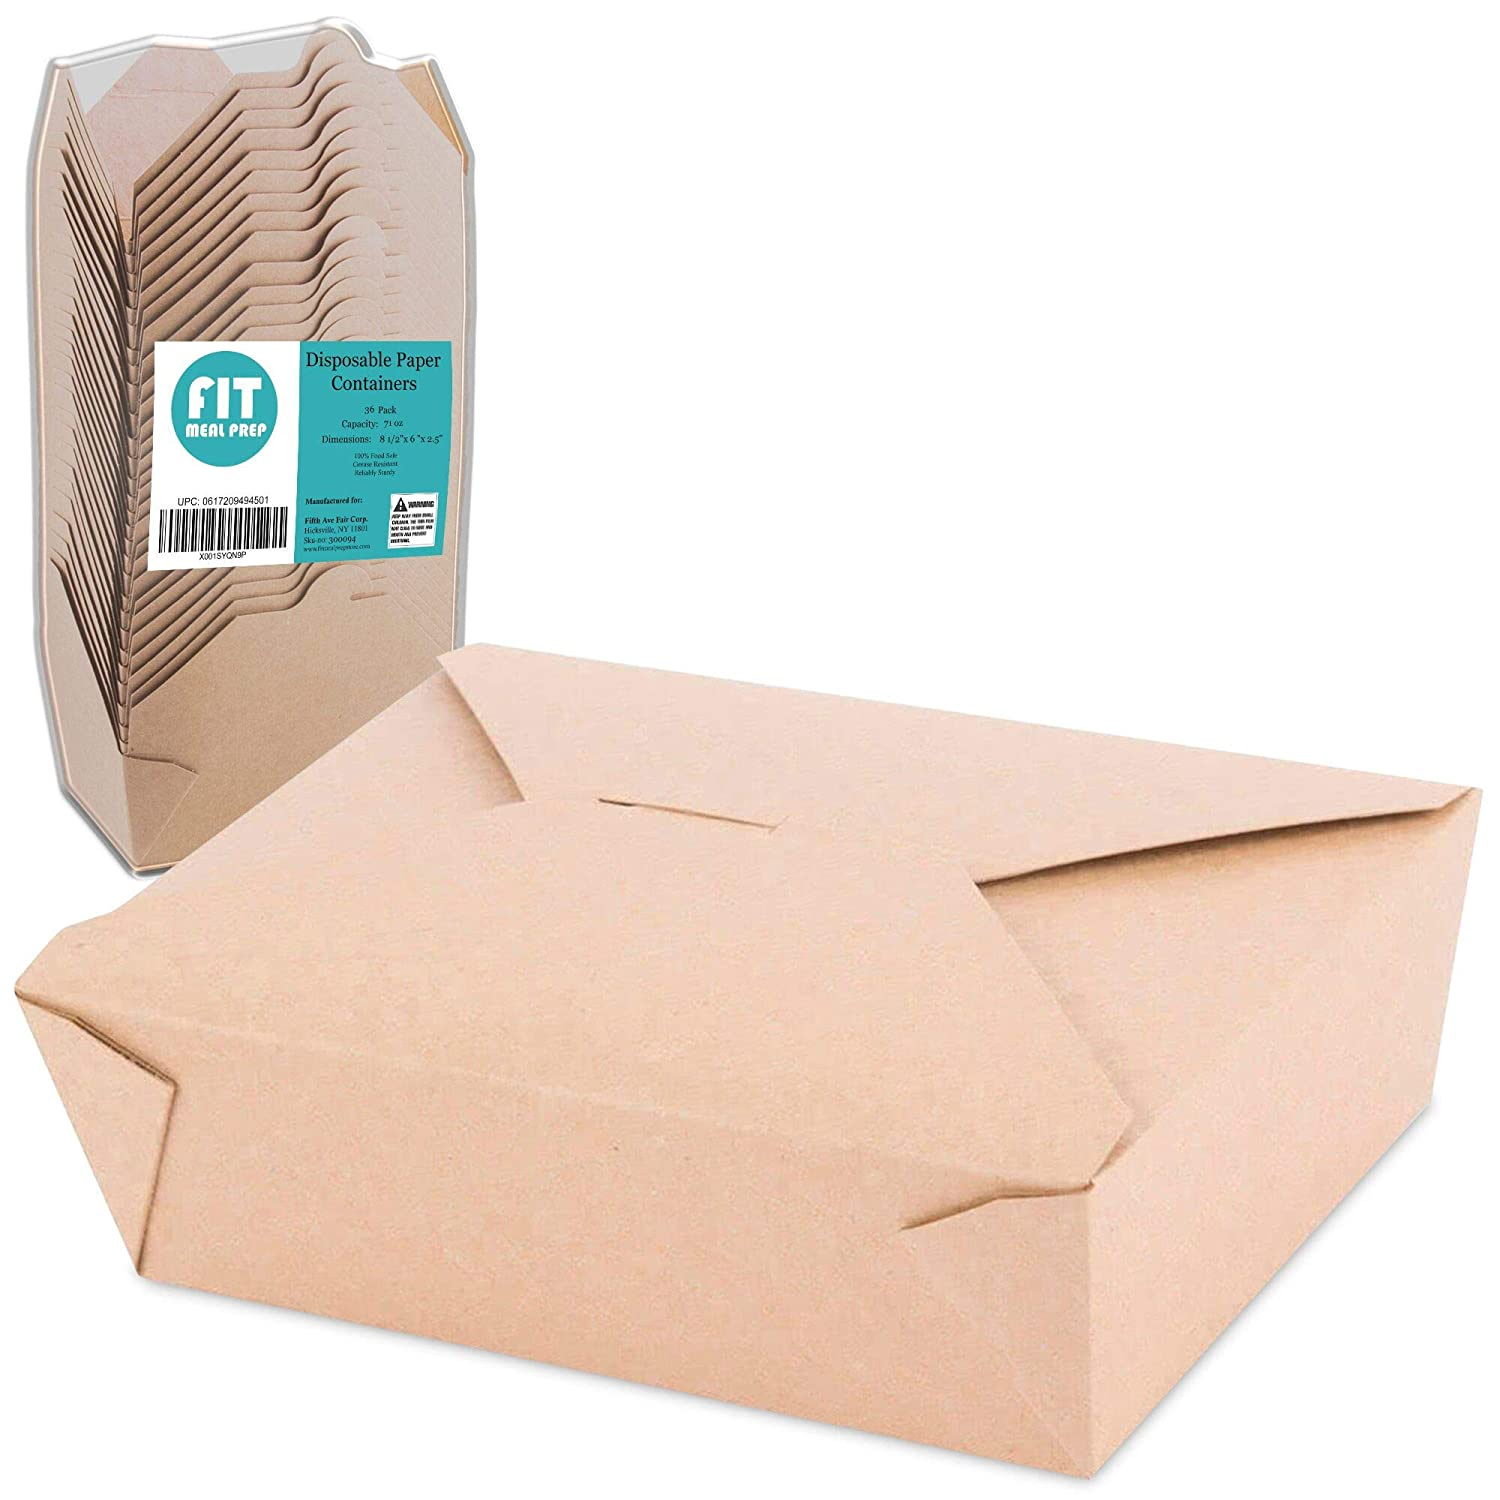 "[36 Pack] 71 oz 8.5 x 6 x 2.5"" Disposable Paper Take Out Food Containers, Microwaveble Folding Natural Kraft to Go Boxes #3"